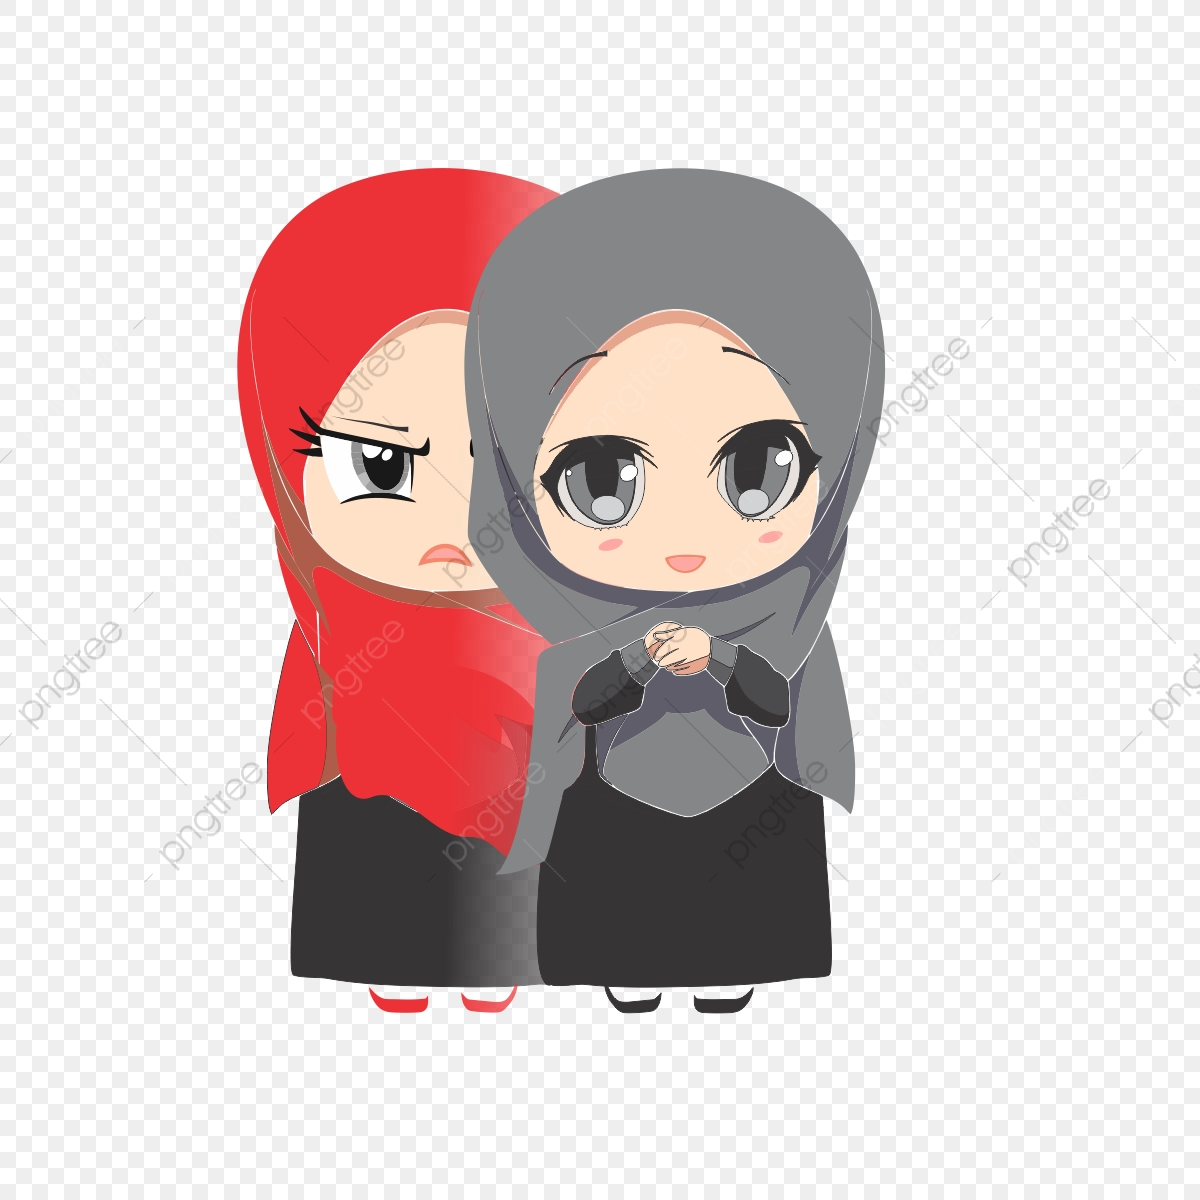 Muslim Cartoon Girl Islam Muslim Peace Png Transparent Image And Clipart For Free Download